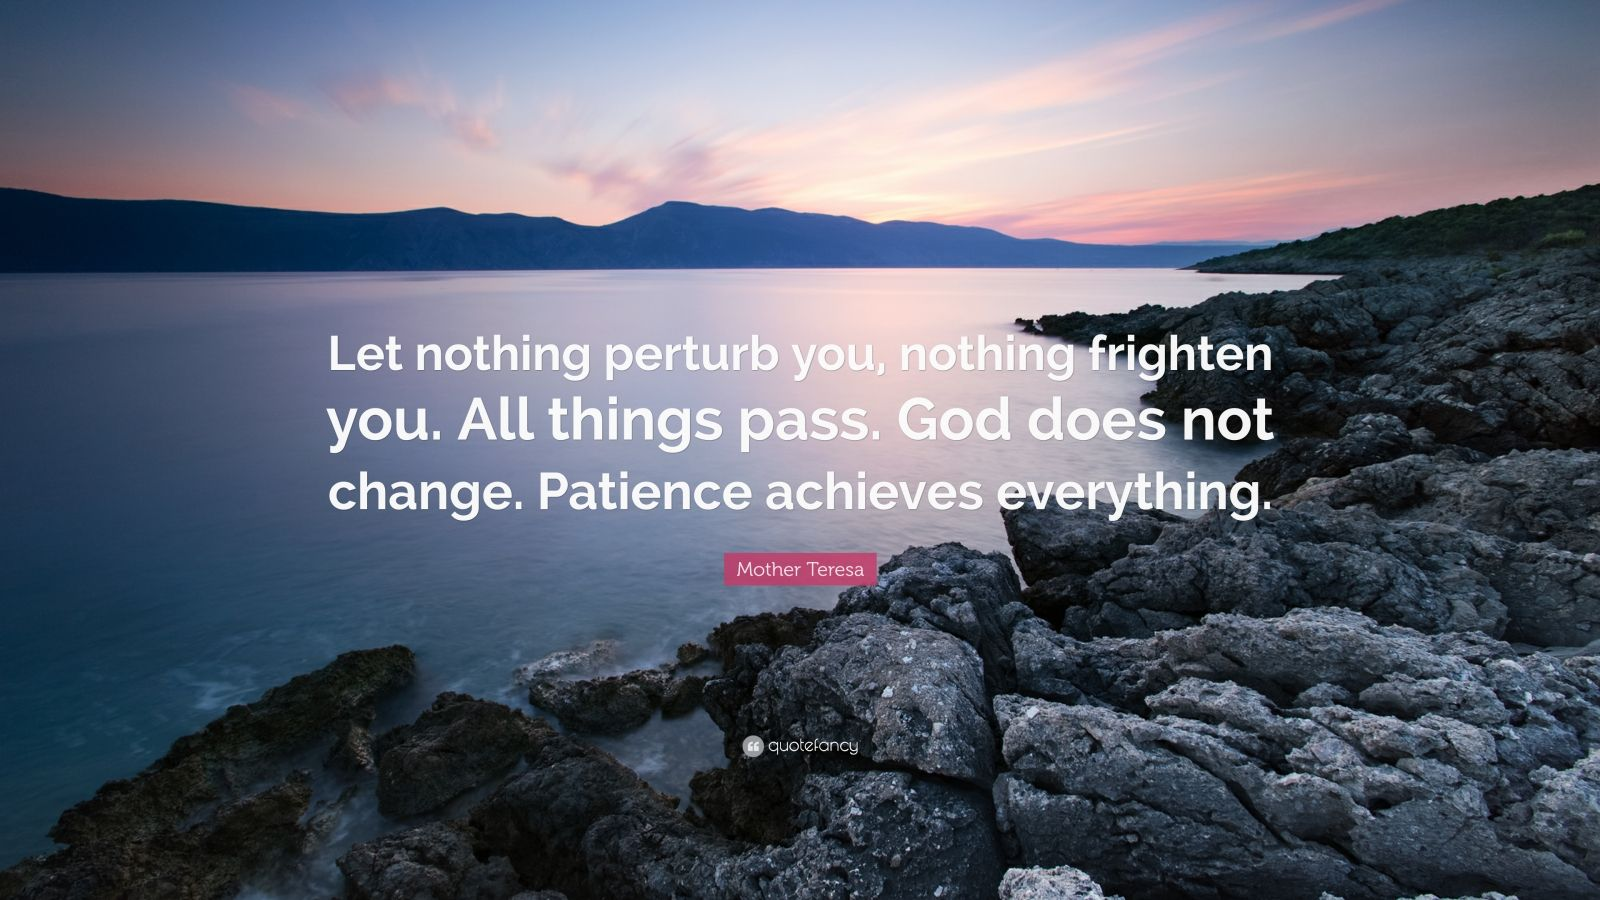 """Mother Teresa Quote: """"Let nothing perturb you, nothing frighten you. All things pass. God does not change. Patience achieves everything."""""""